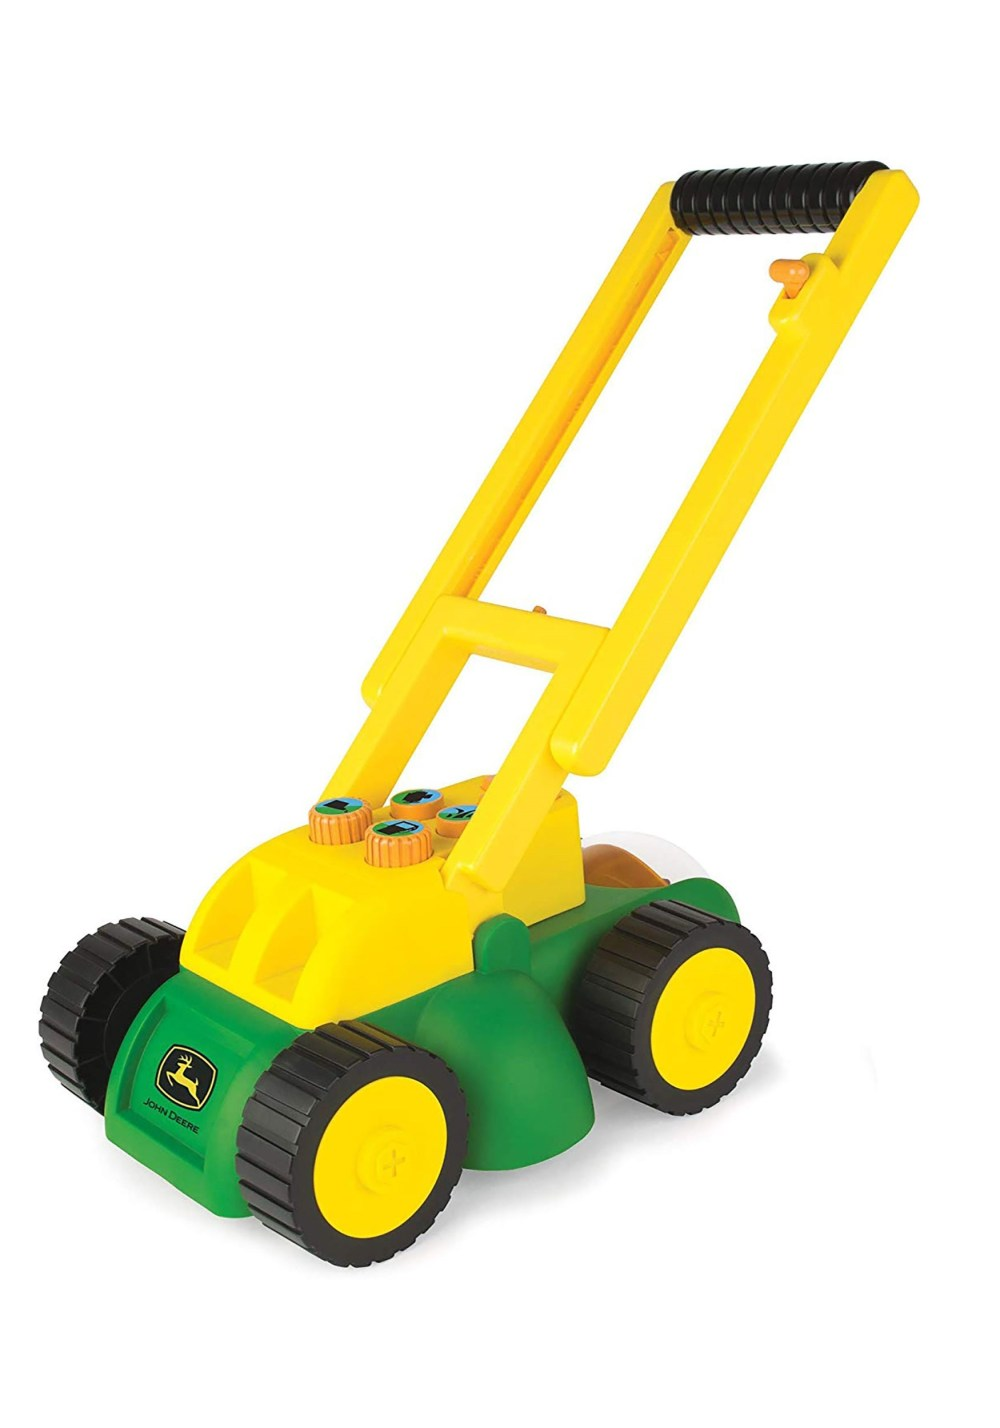 medium resolution of john deere real sounds lawnmower toy